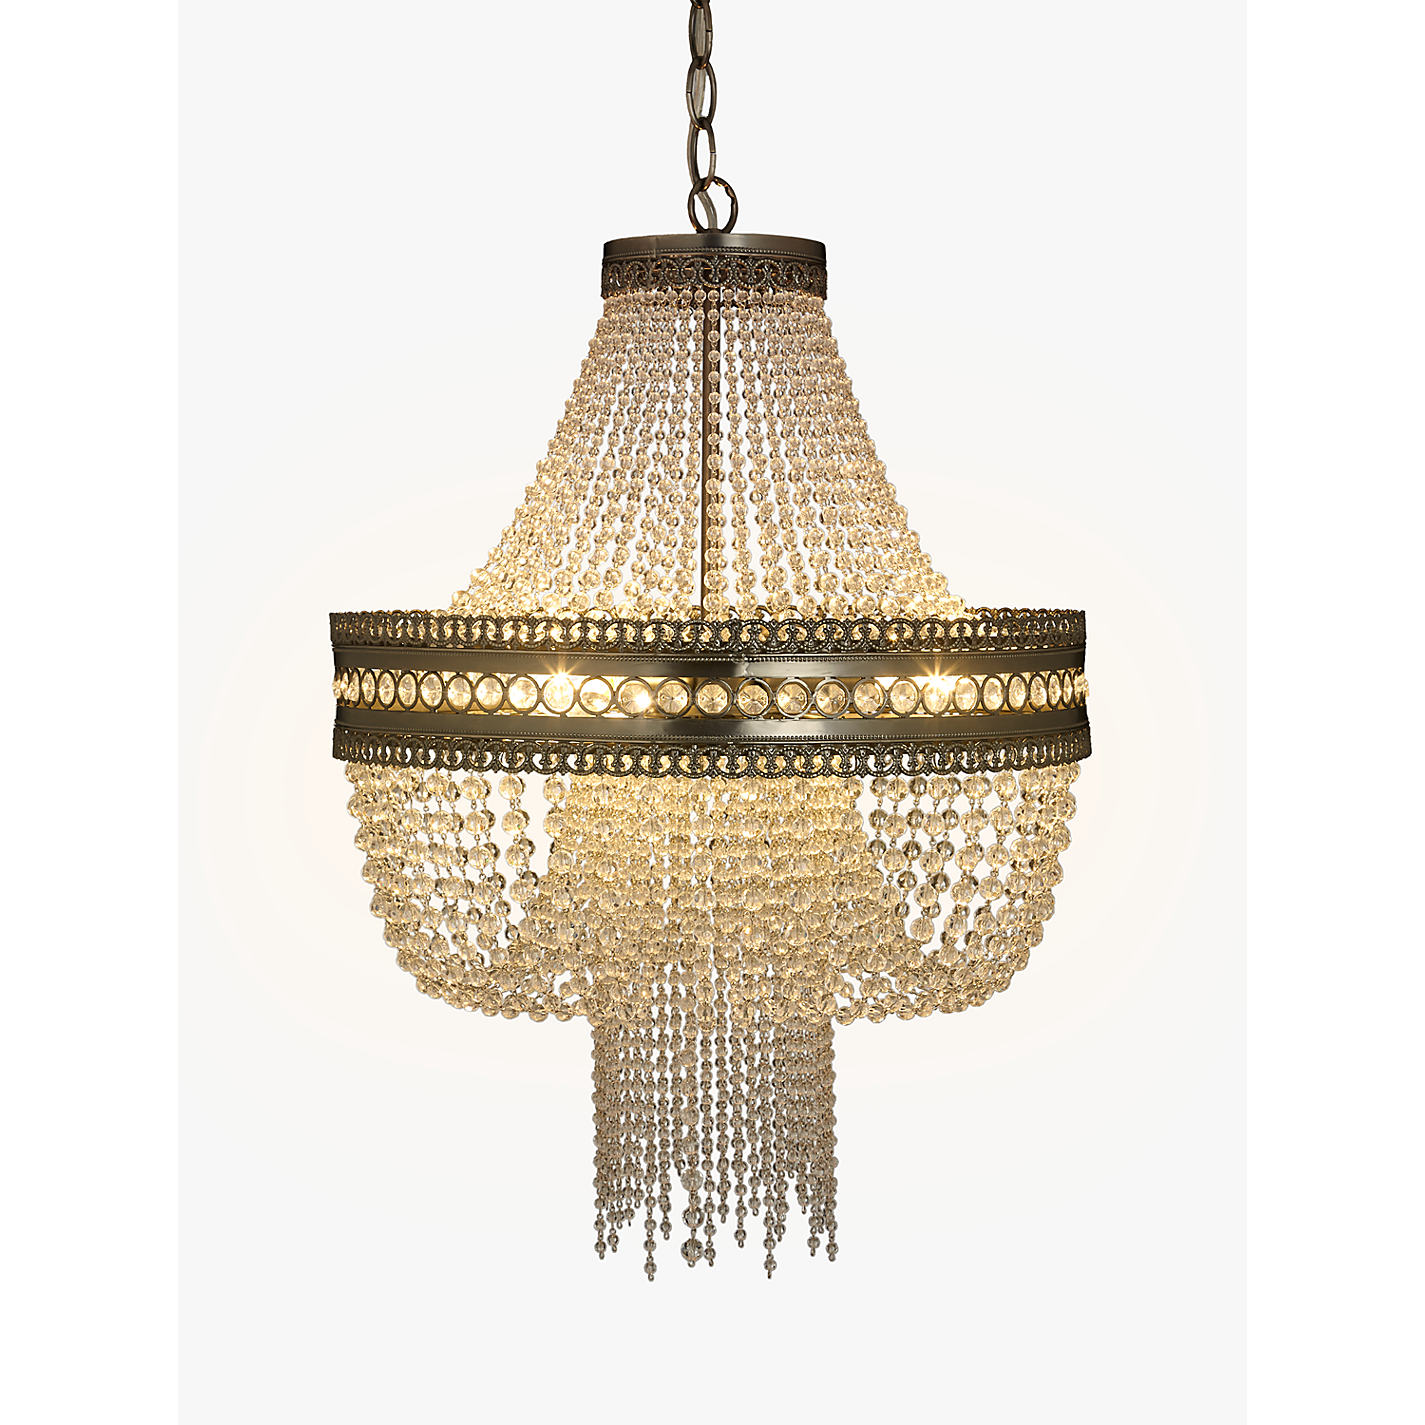 Buy john lewis lucia crystal chandelier crystalclear john lewis buy john lewis lucia crystal chandelier crystalclear online at johnlewis arubaitofo Choice Image